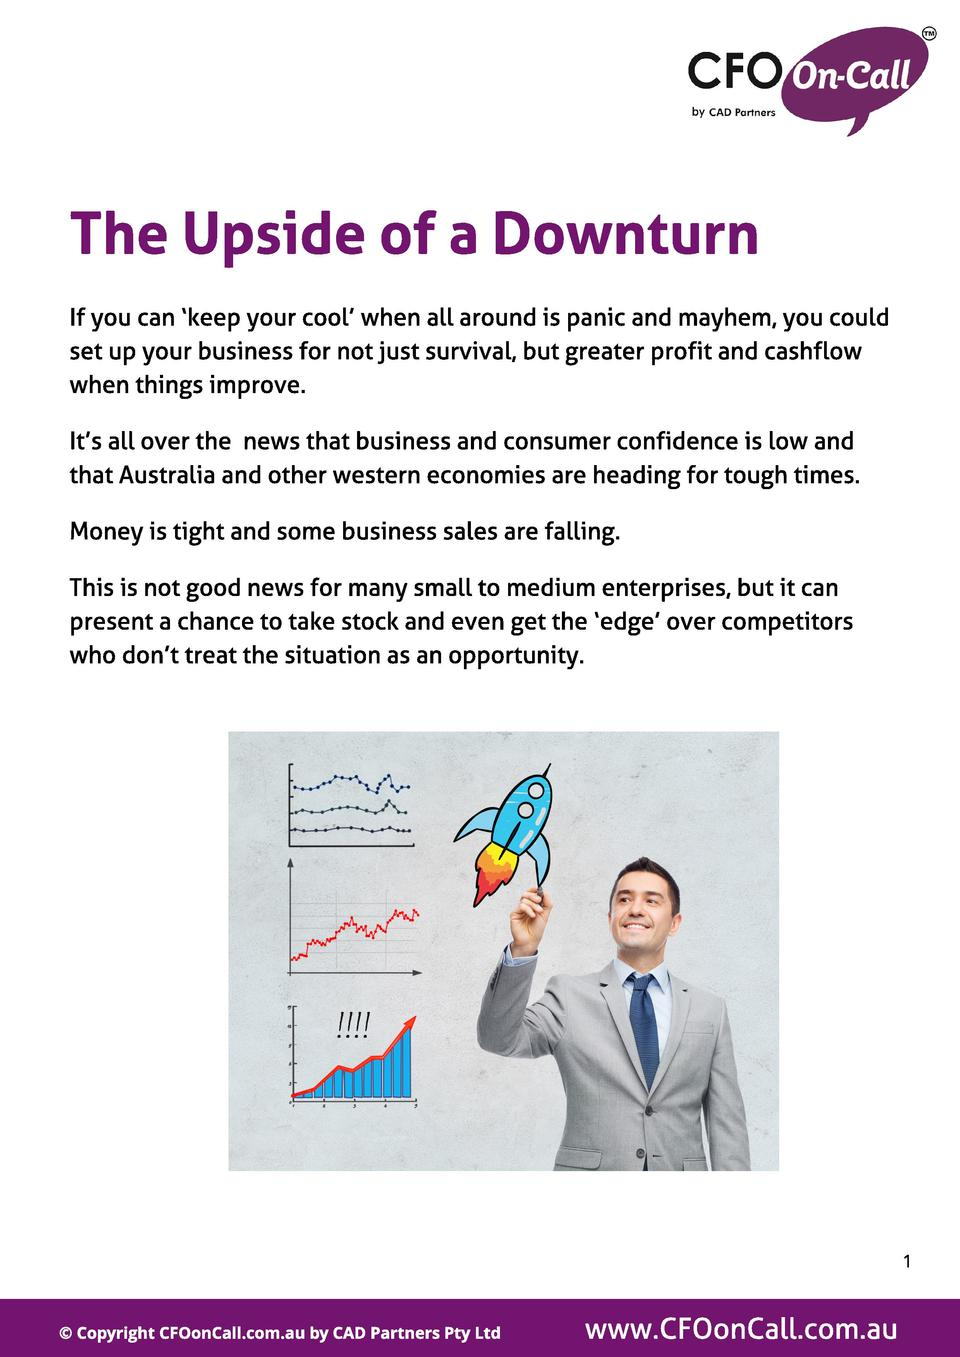 The Upside of a Downt urn If you can  keep your cool when all around is panic and mayhem, you could set up your business f...